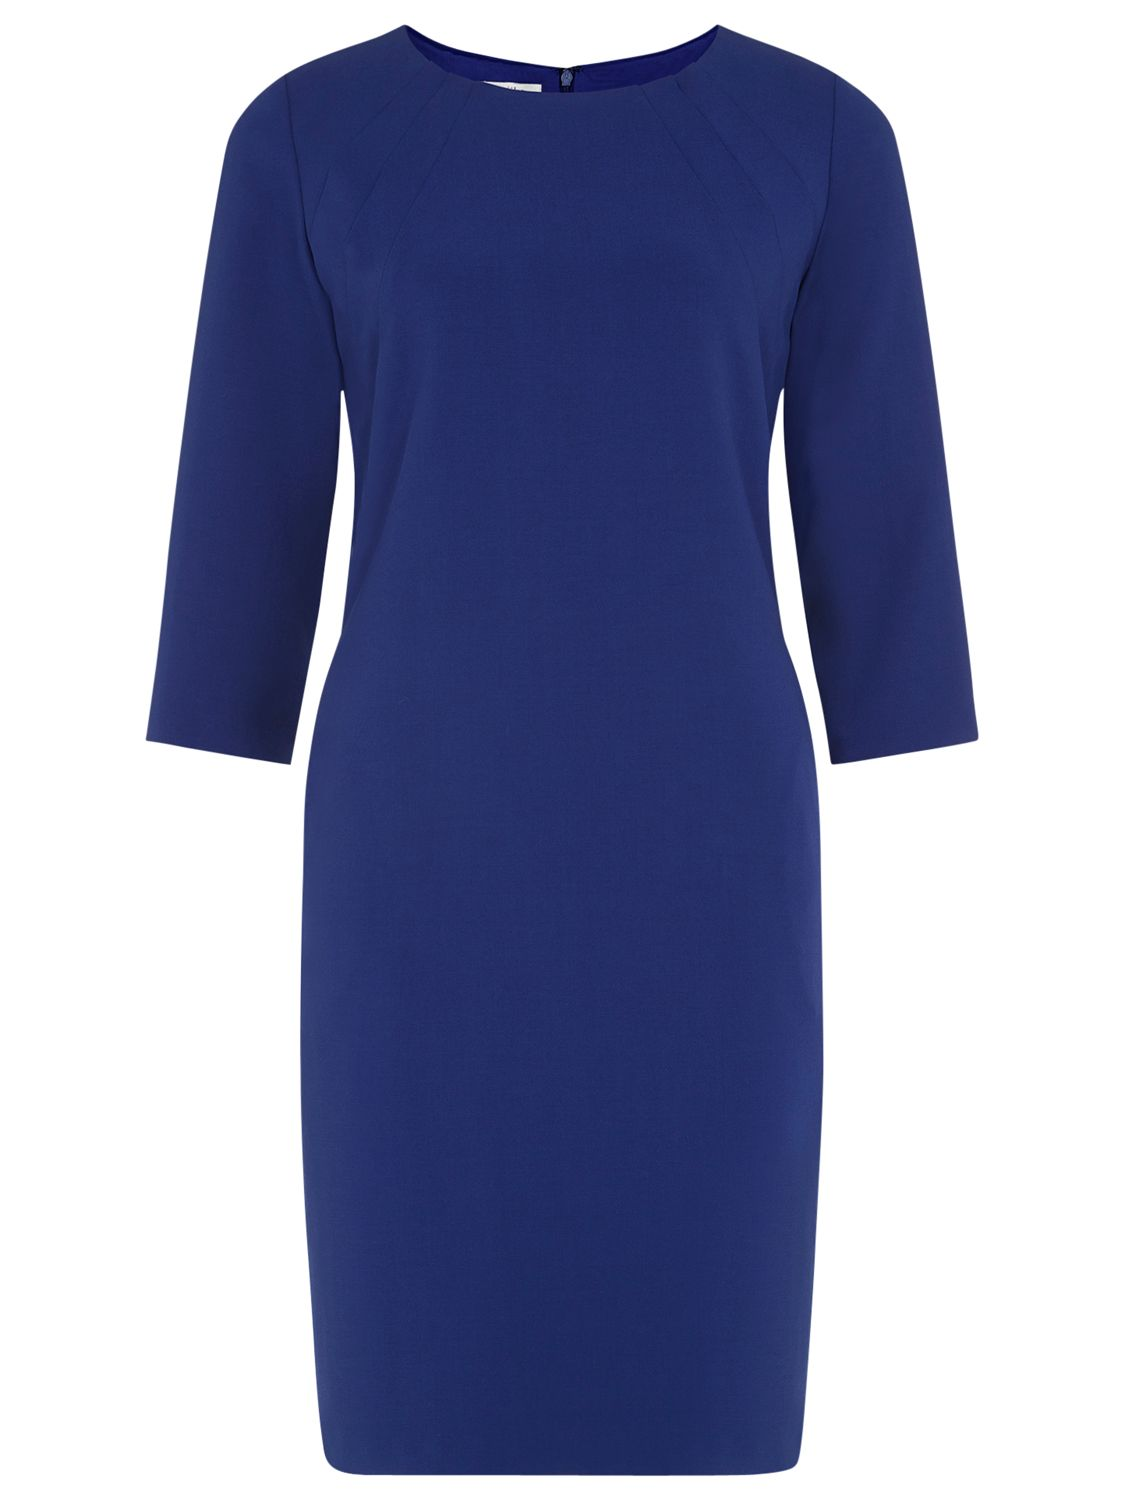 kaliko lace crepe dress cobalt, kaliko, lace, crepe, dress, cobalt, 8|10|14, clearance, womenswear offers, womens dresses offers, special offers, 20% off selected kaliko, women, womens dresses, workwear offers, 1673607